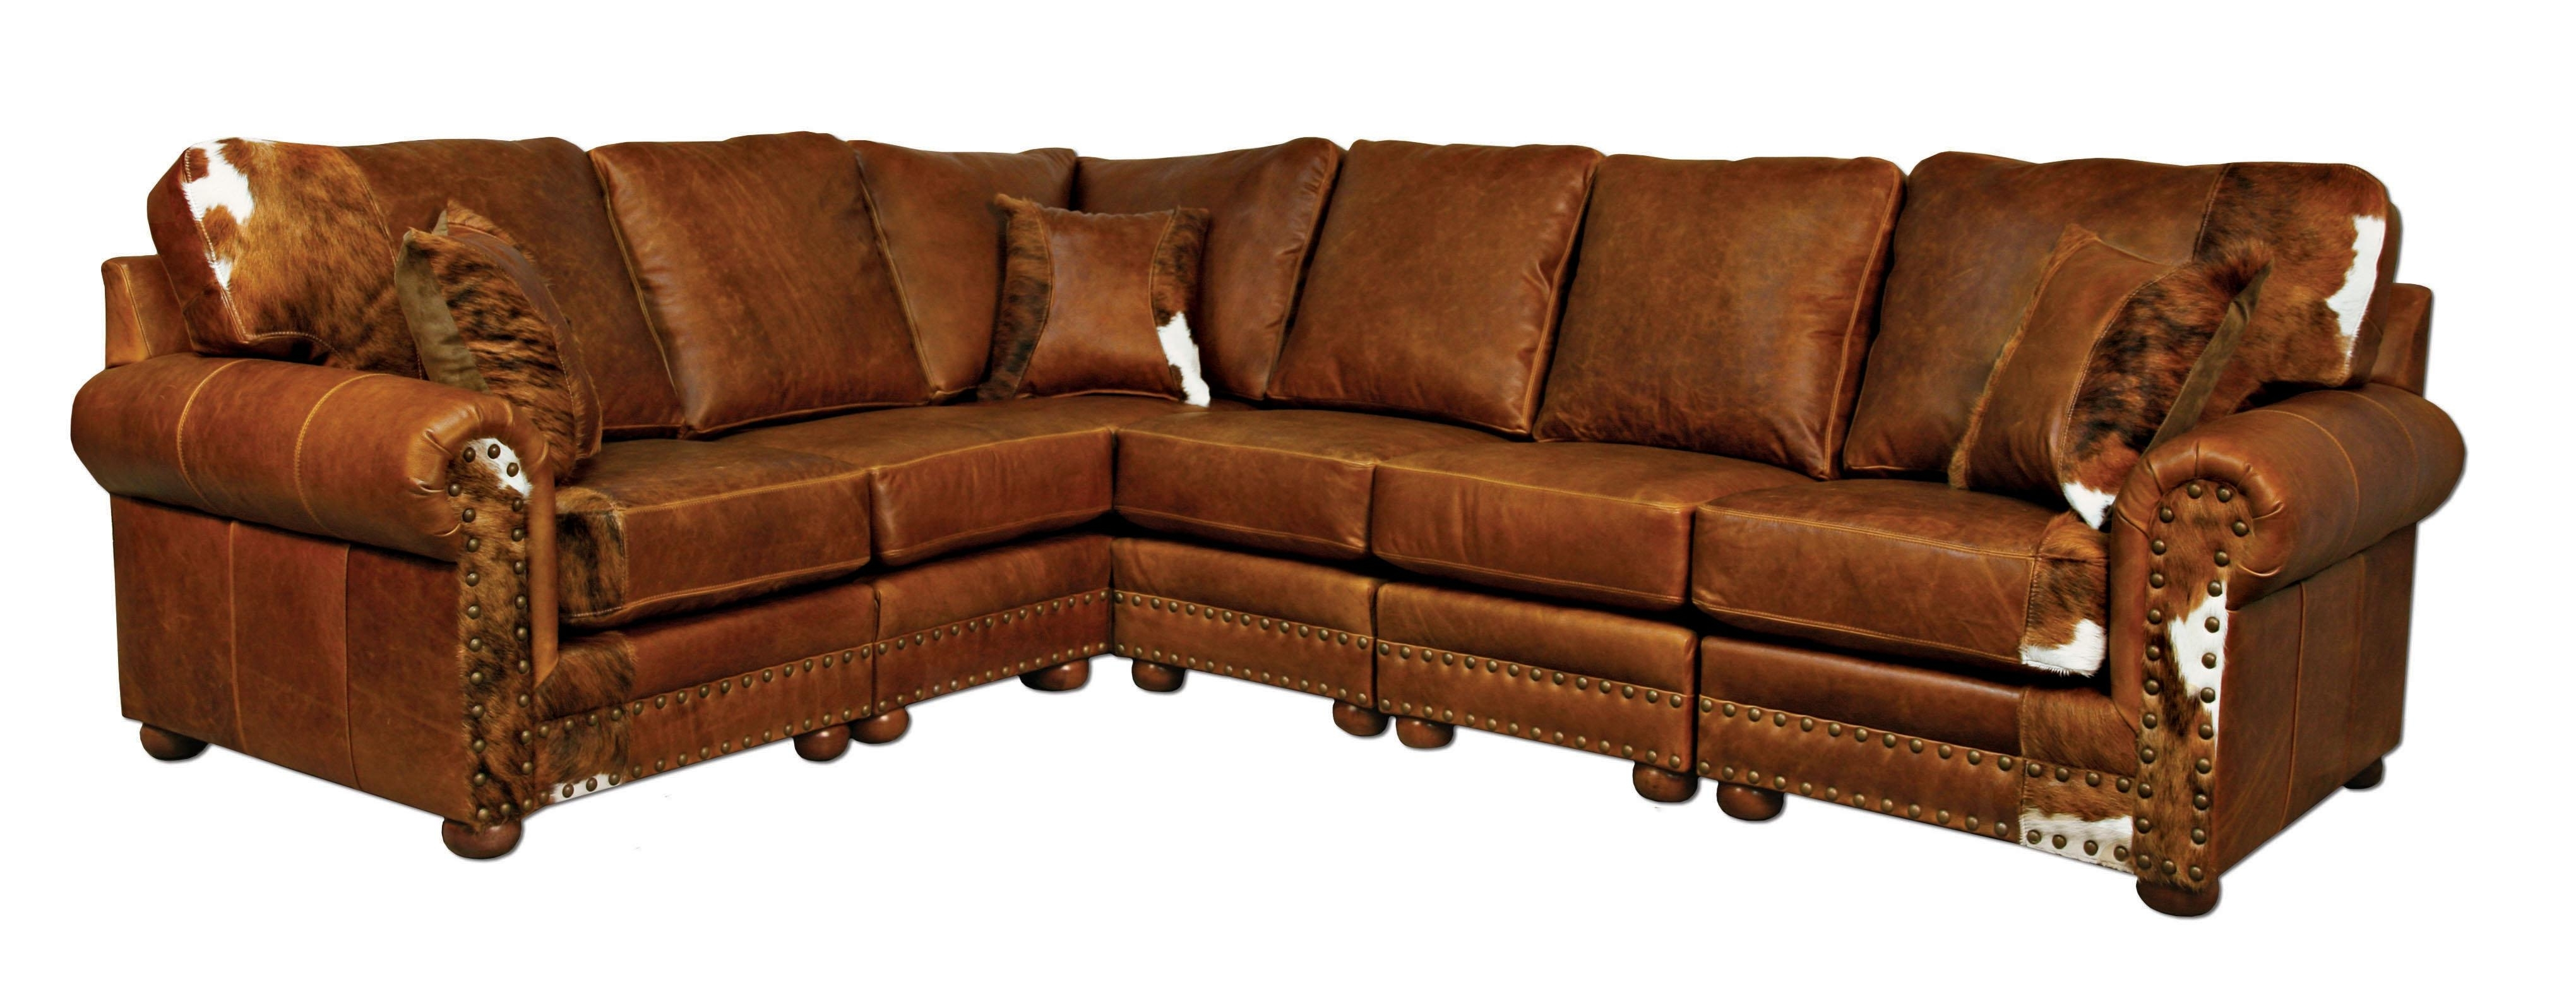 Sectional Sofa Design: Amazing Western Sectional Sofa Western Throughout Most Up To Date Western Style Sectional Sofas (View 8 of 15)